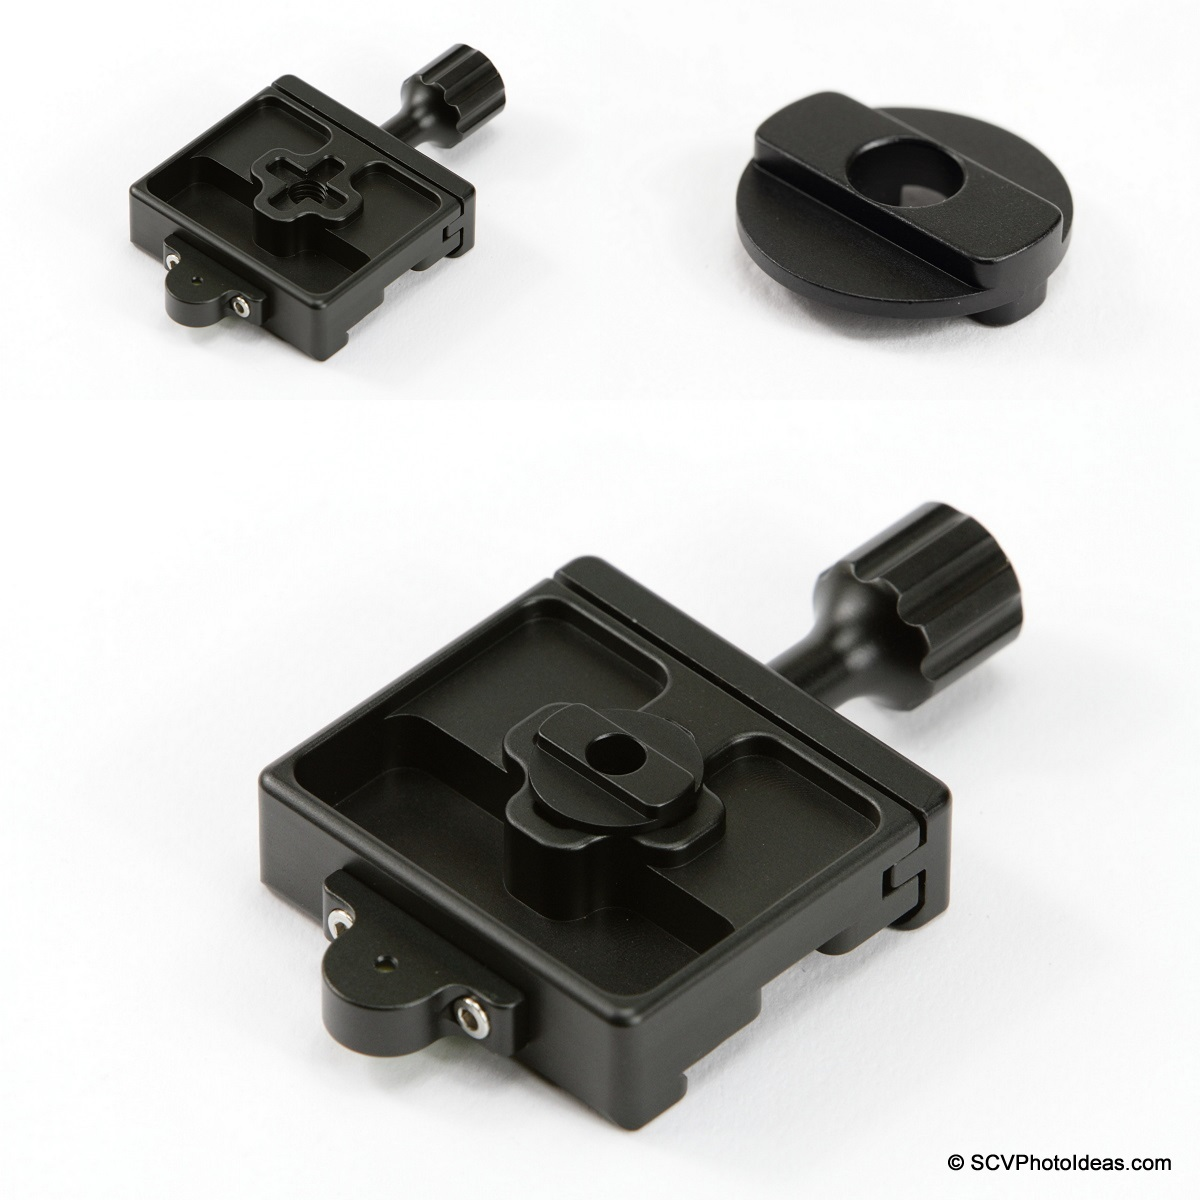 Desmond DBA-2 QR clamp + Desmond DBAD-1 bottom view Fitting seq